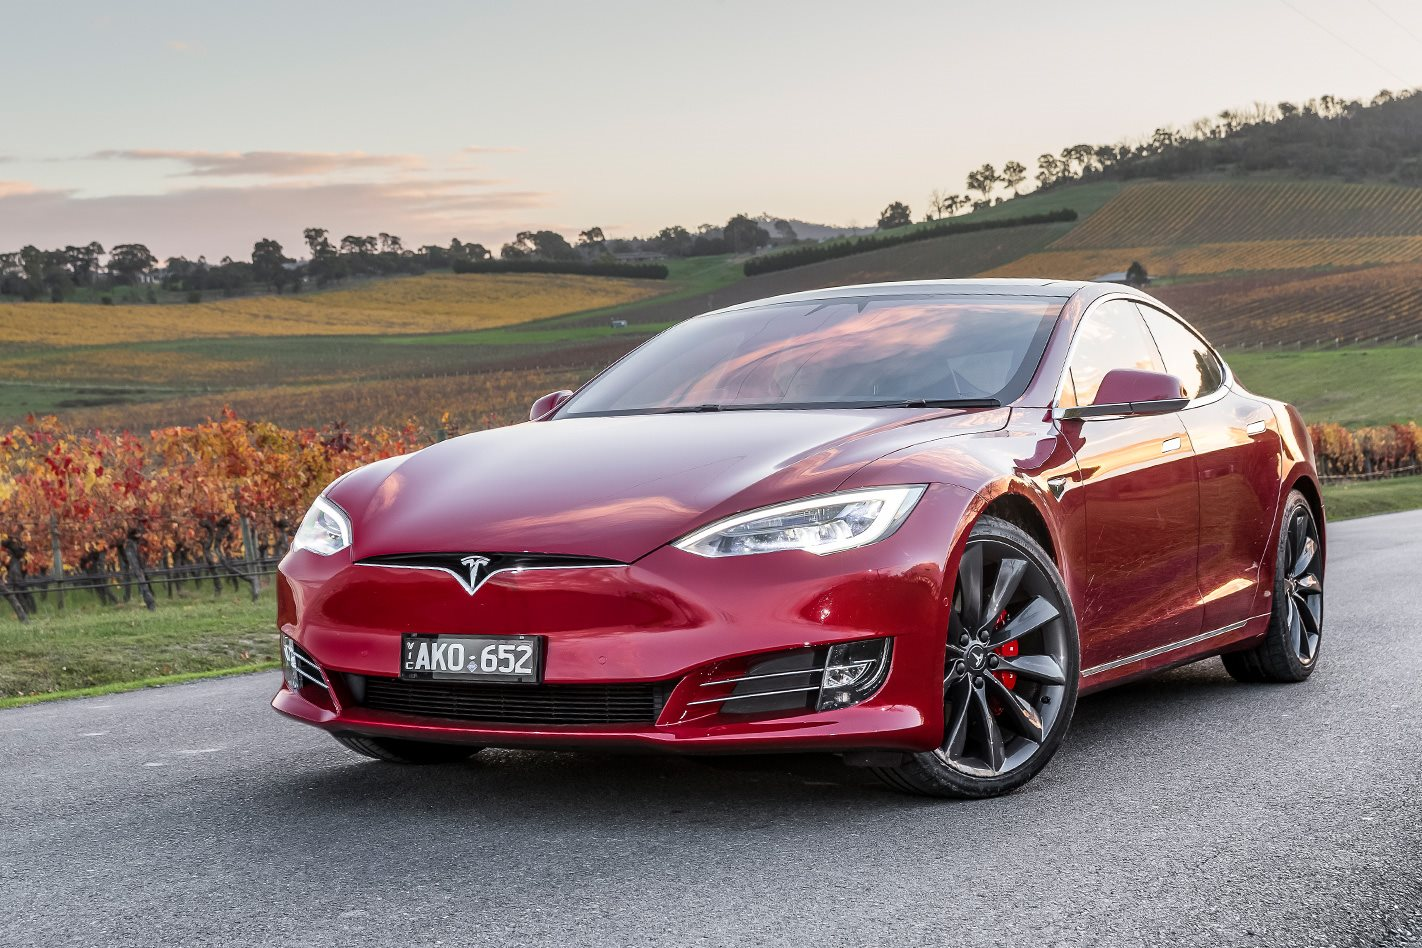 2018 tesla p100d. plain tesla things are less aurally exciting in the tesla which doesnu0027t so much roar  as whoosh after myriad updates since launching 2014 to improve functionality  in 2018 tesla p100d